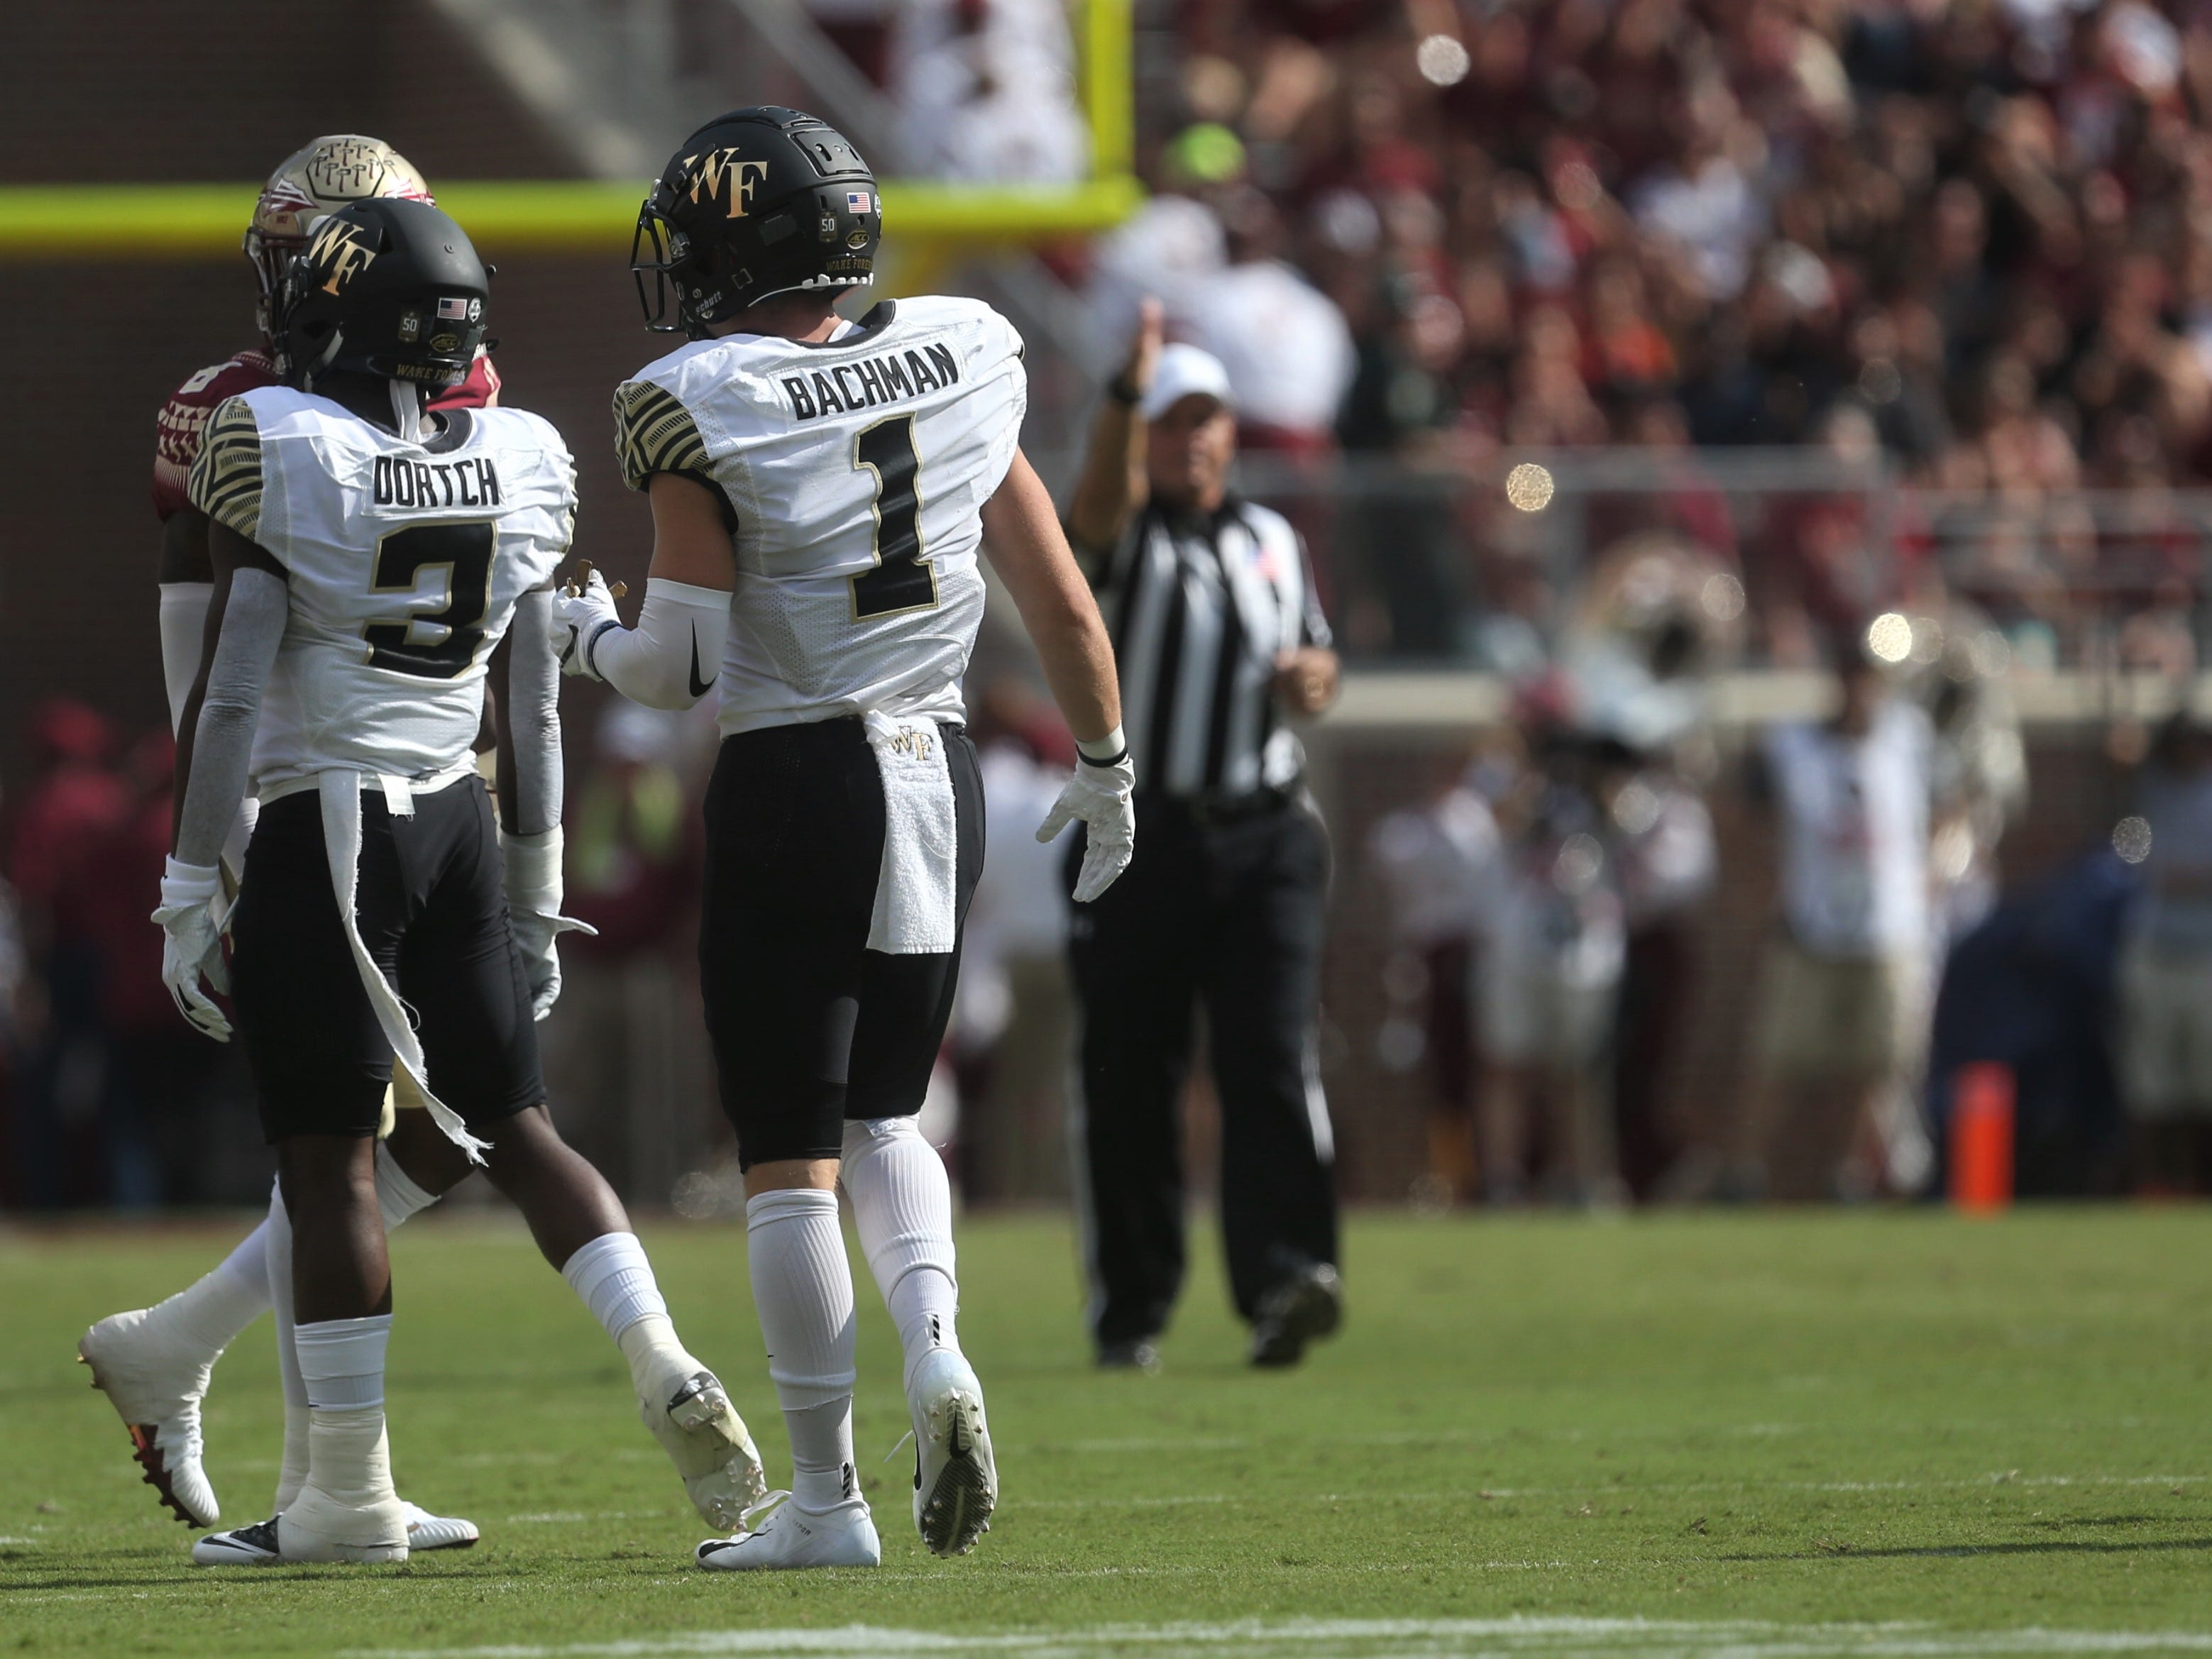 Wake Forest receivers Greg Dortch and Alex Bachman jaw with a Florida State defender during a game at Doak Campbell Stadium on Saturday, Oct. 20, 2018.